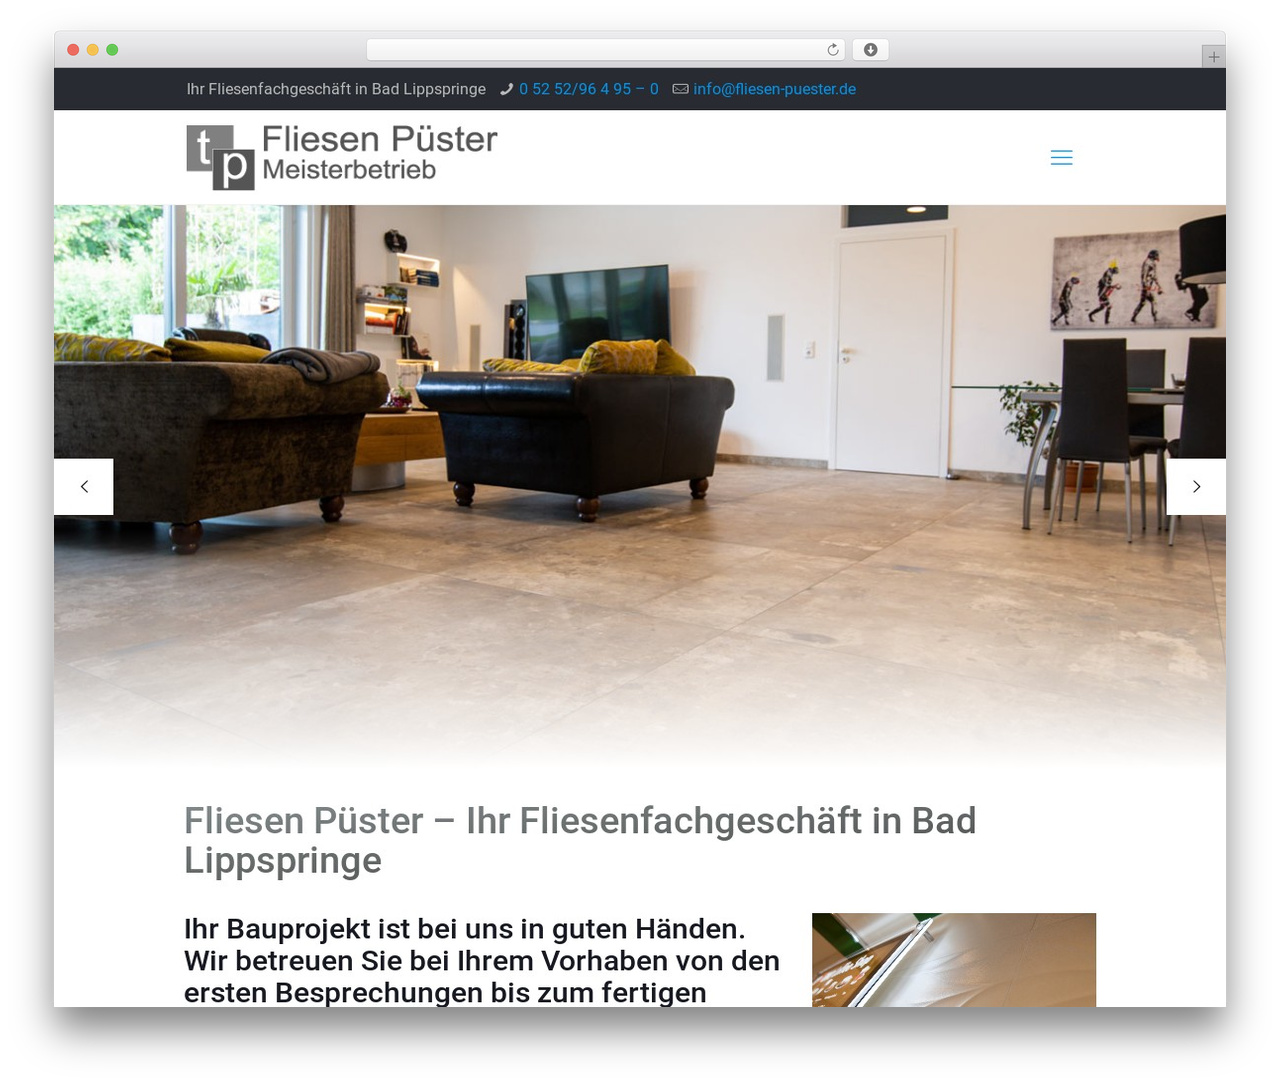 Fliesen Bad Lippspringe Theme Wordpress Betheme By Muffin Group Fliesen Puester De